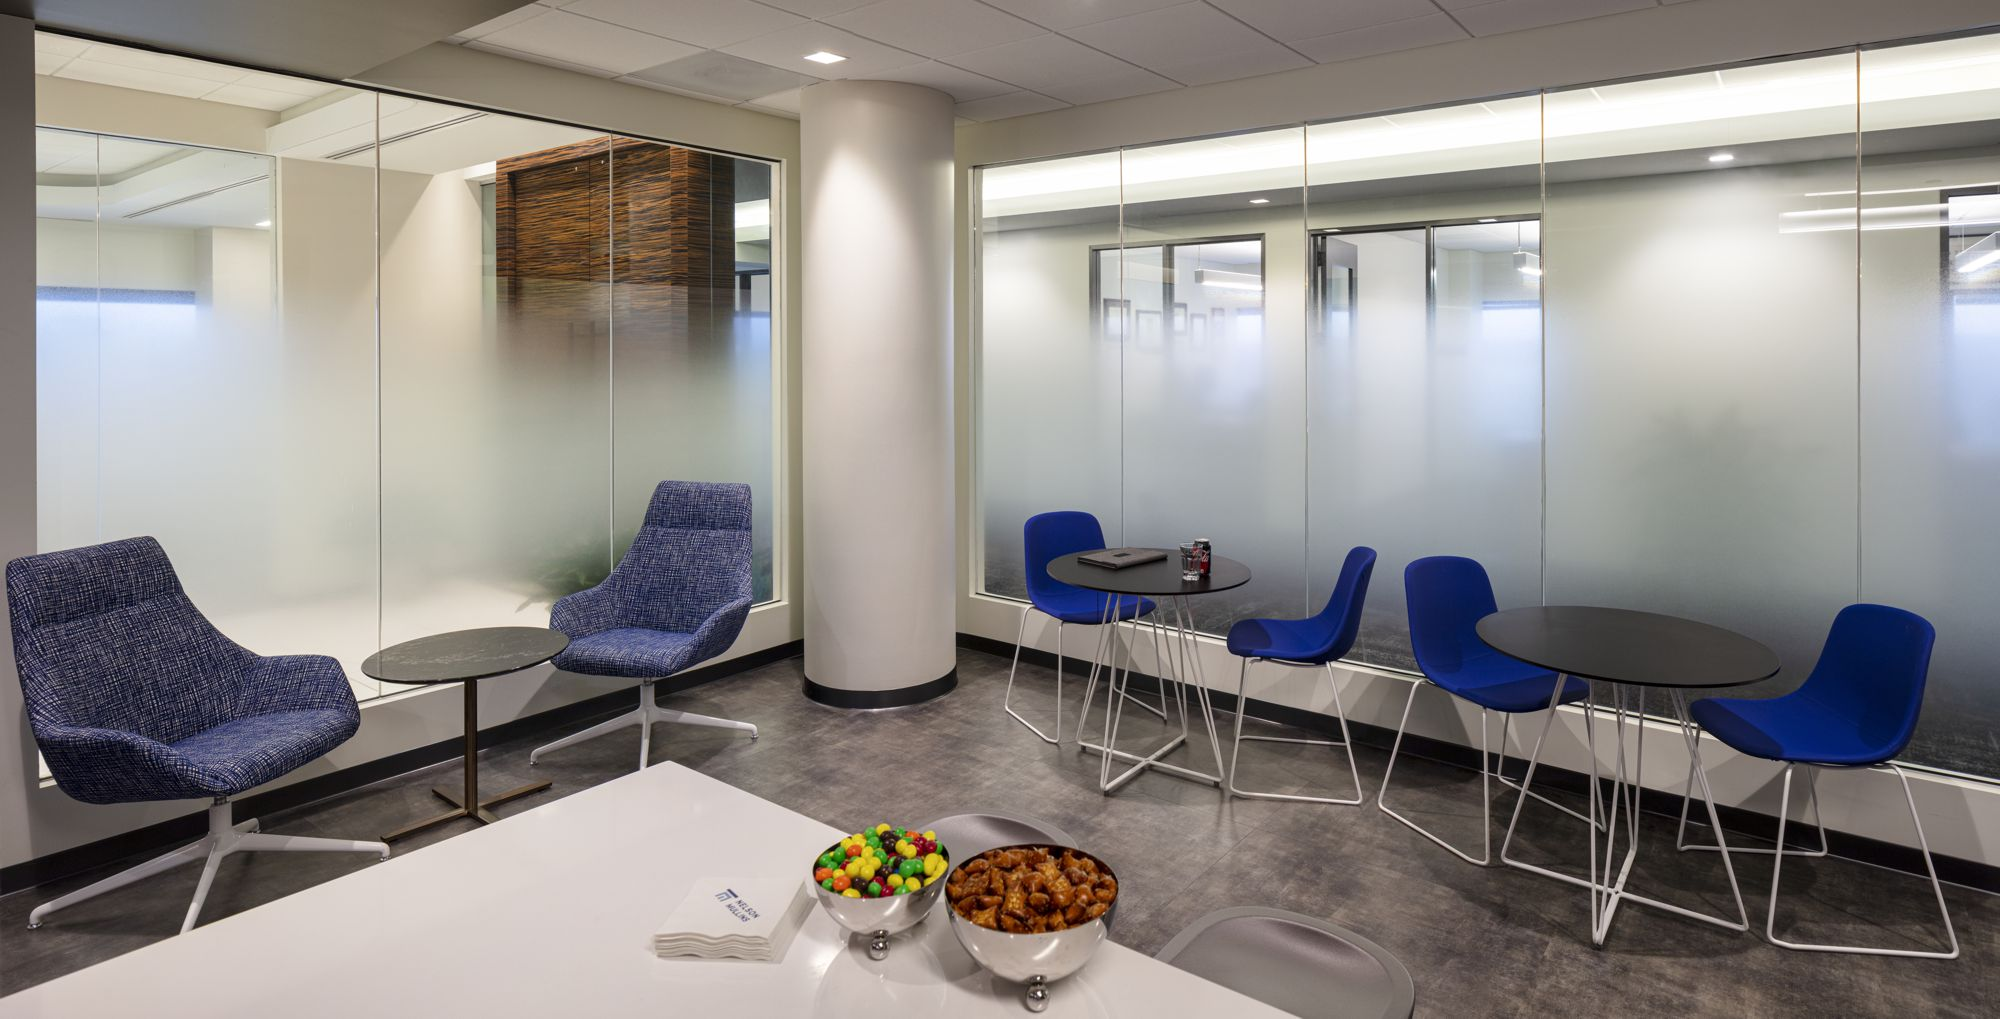 The lunch room ties in the bright blue accent color and utilizes a gradient film to enhance privacy.